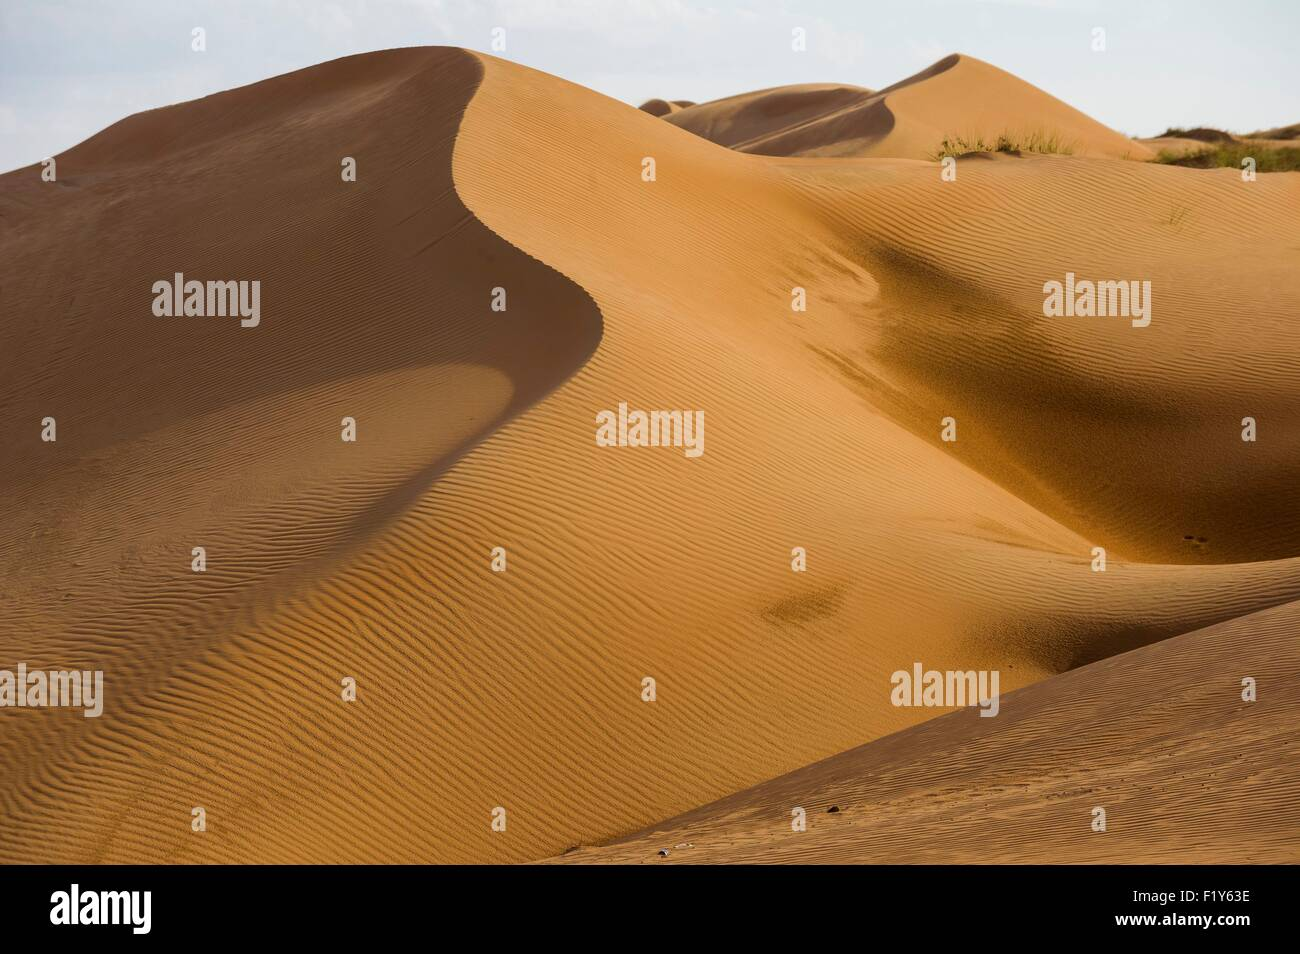 Oman, Sharquiyah Sands the Eastern Sands, crossing south north, sand dunes - Stock Image